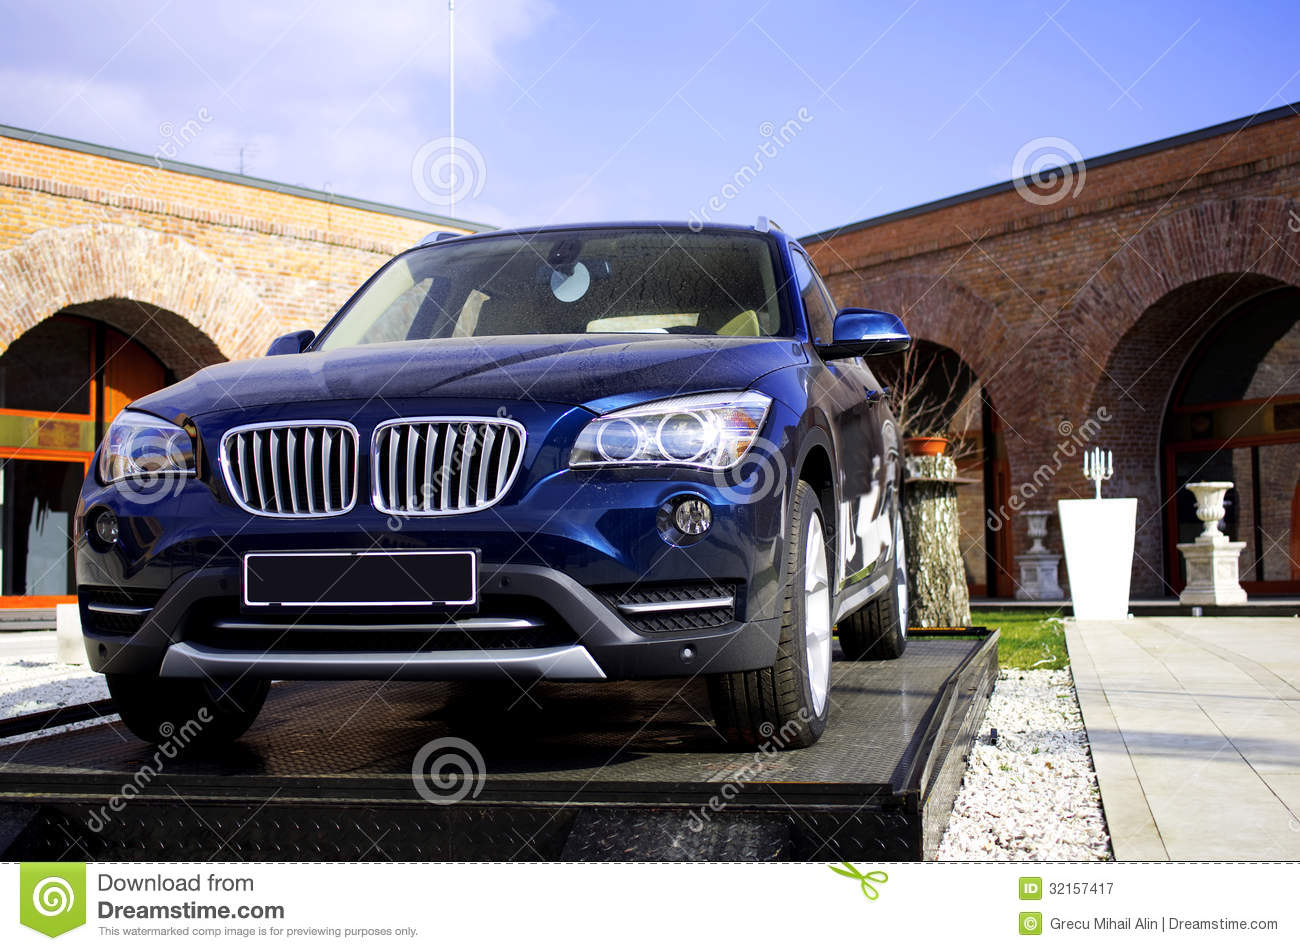 Expensive Car For Sale Or Gift Royalty Free Stock Image: New Car Royalty Free Stock Photography